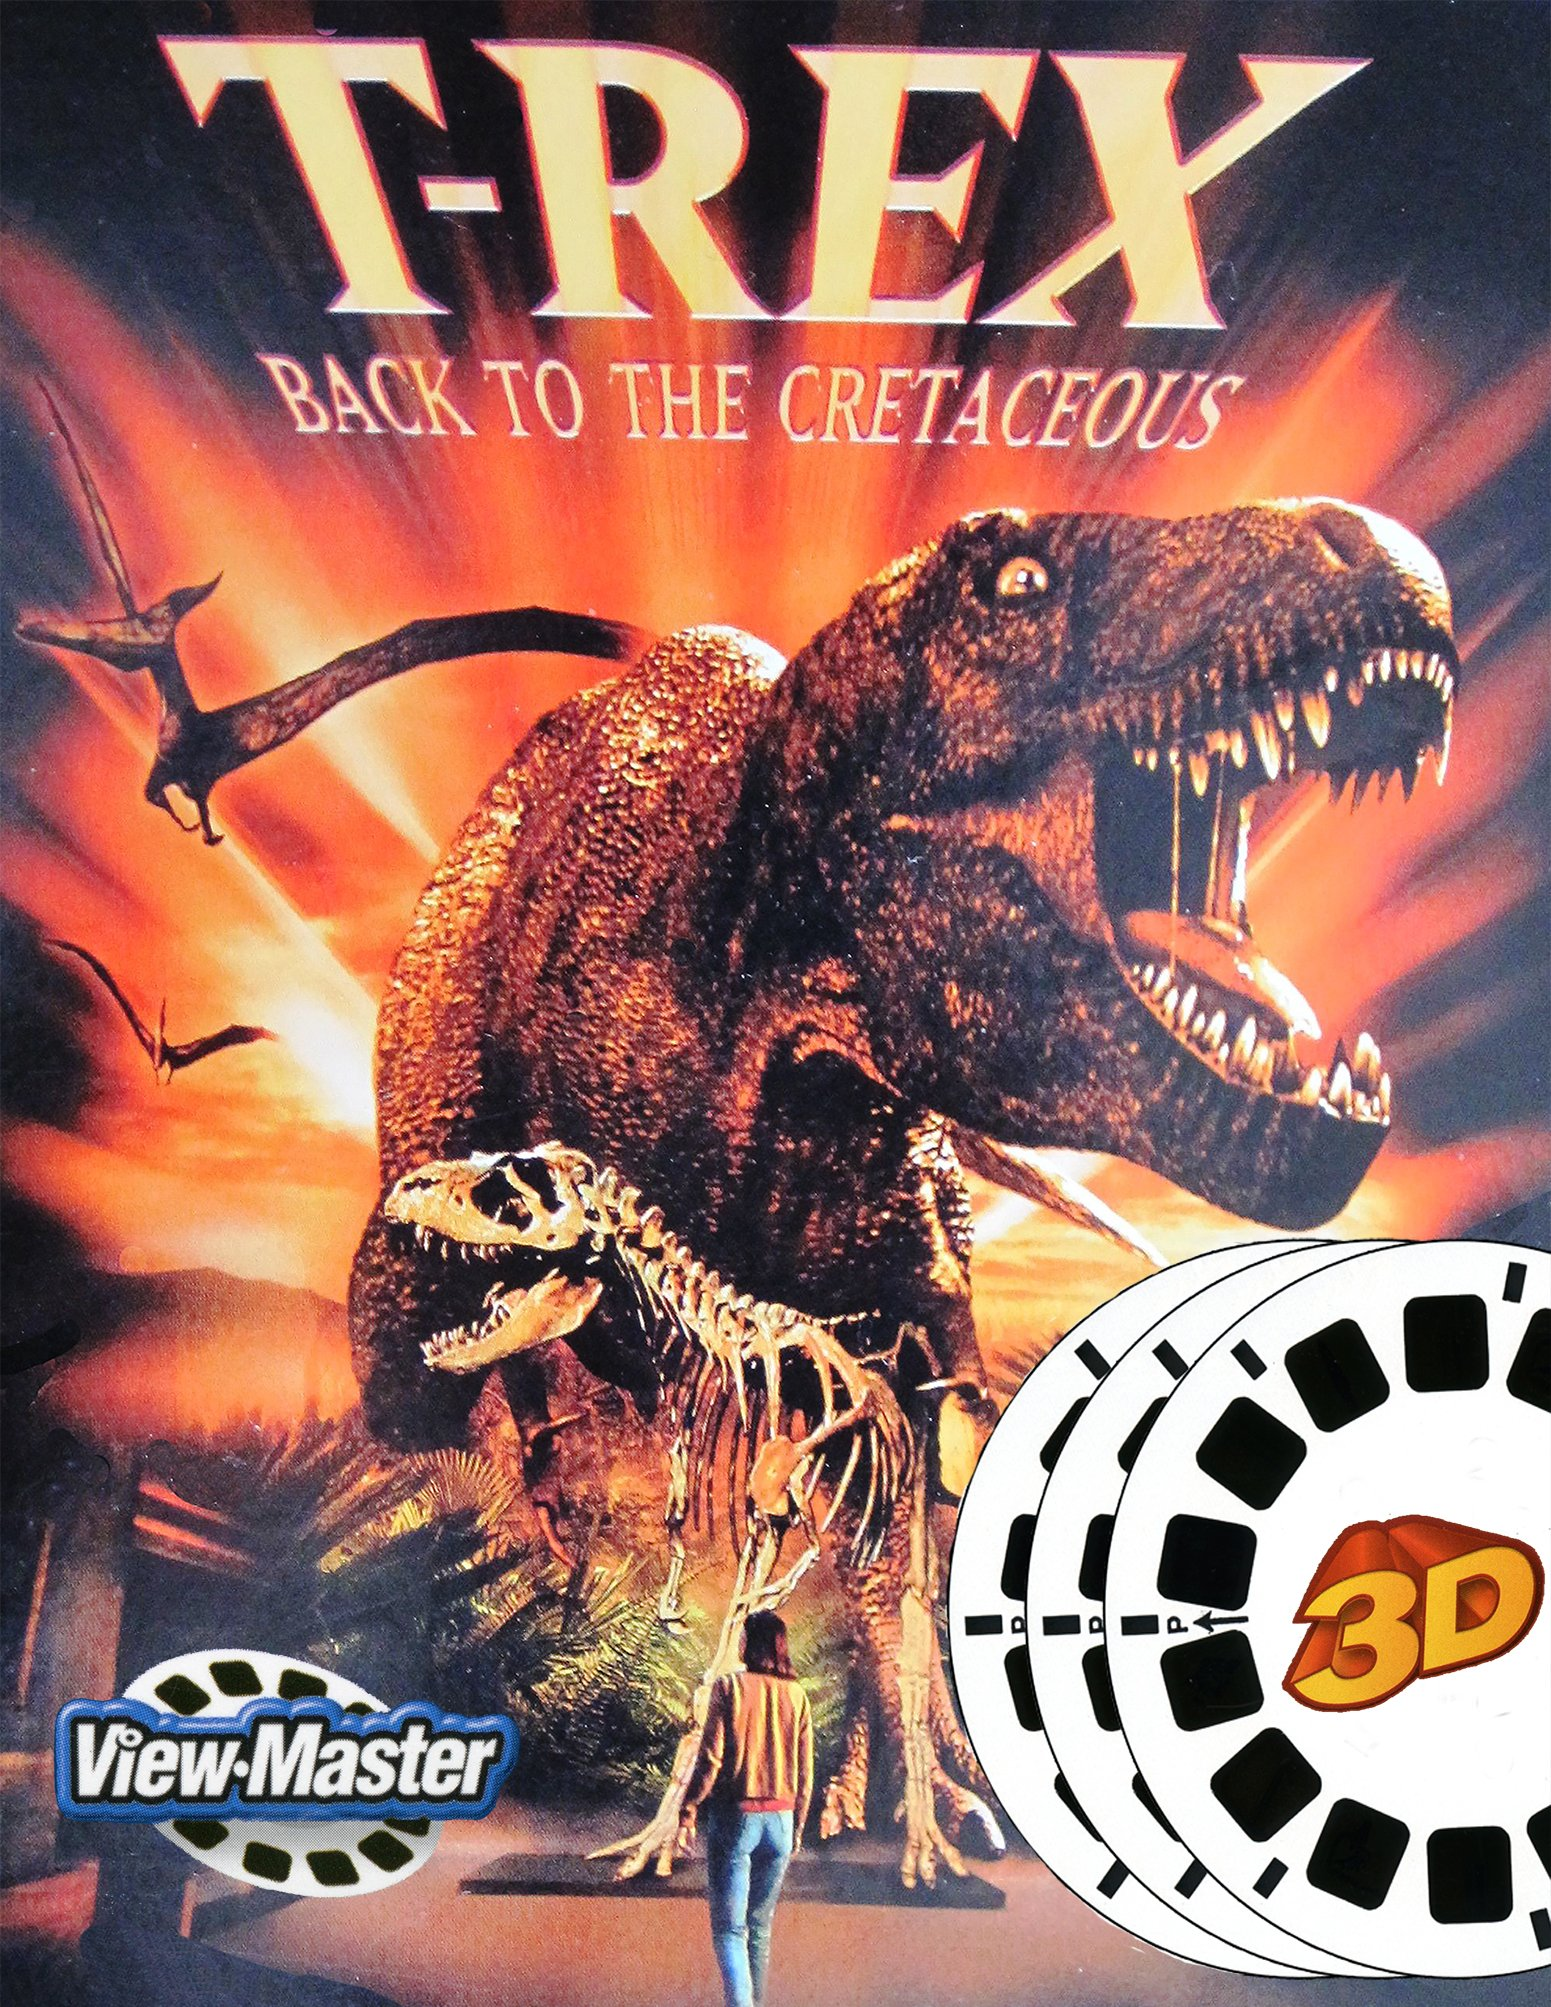 T-REX Back to the Cretaceous - Classic 3D View-Master 3 Reel Set by View Master